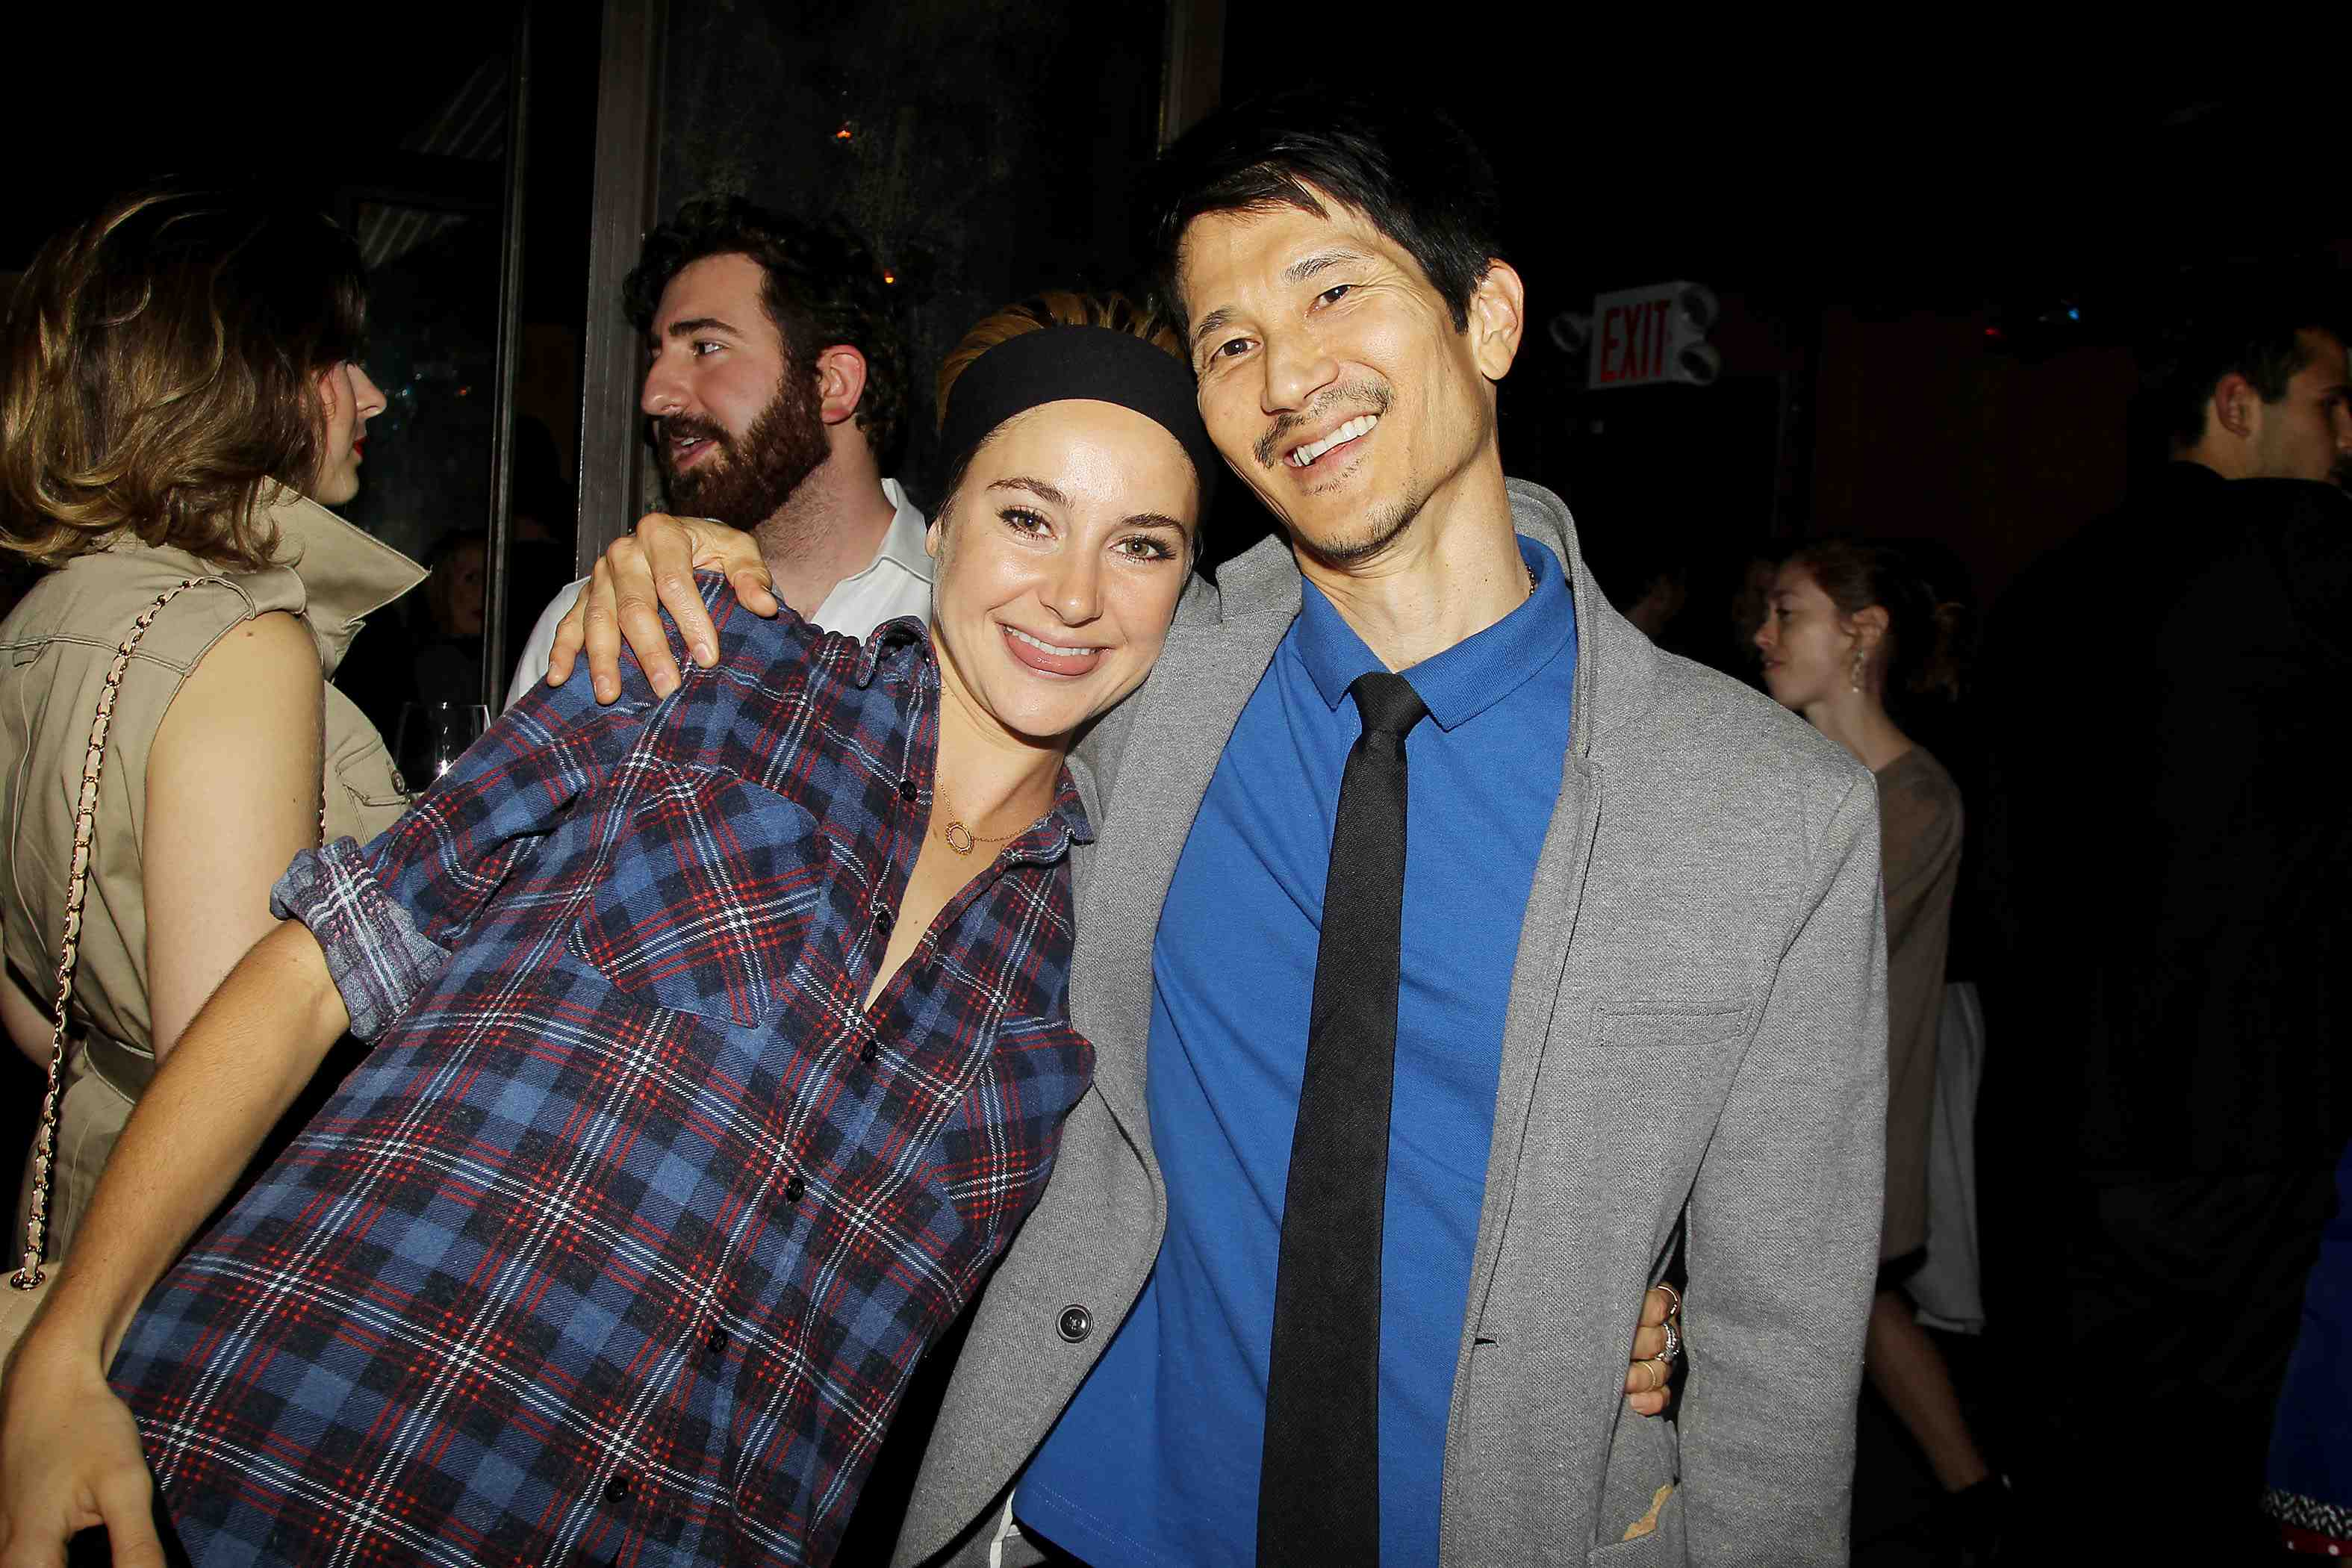 Shailene Woodley and Gregg Araki at an after-party, presented by FIJI Water and SVEDKA Vodka, for a special New York screening of Magnolia Pictures'  White Bird In a Blizzard on Oct. 15. (Amanda Schwab/Starpix)